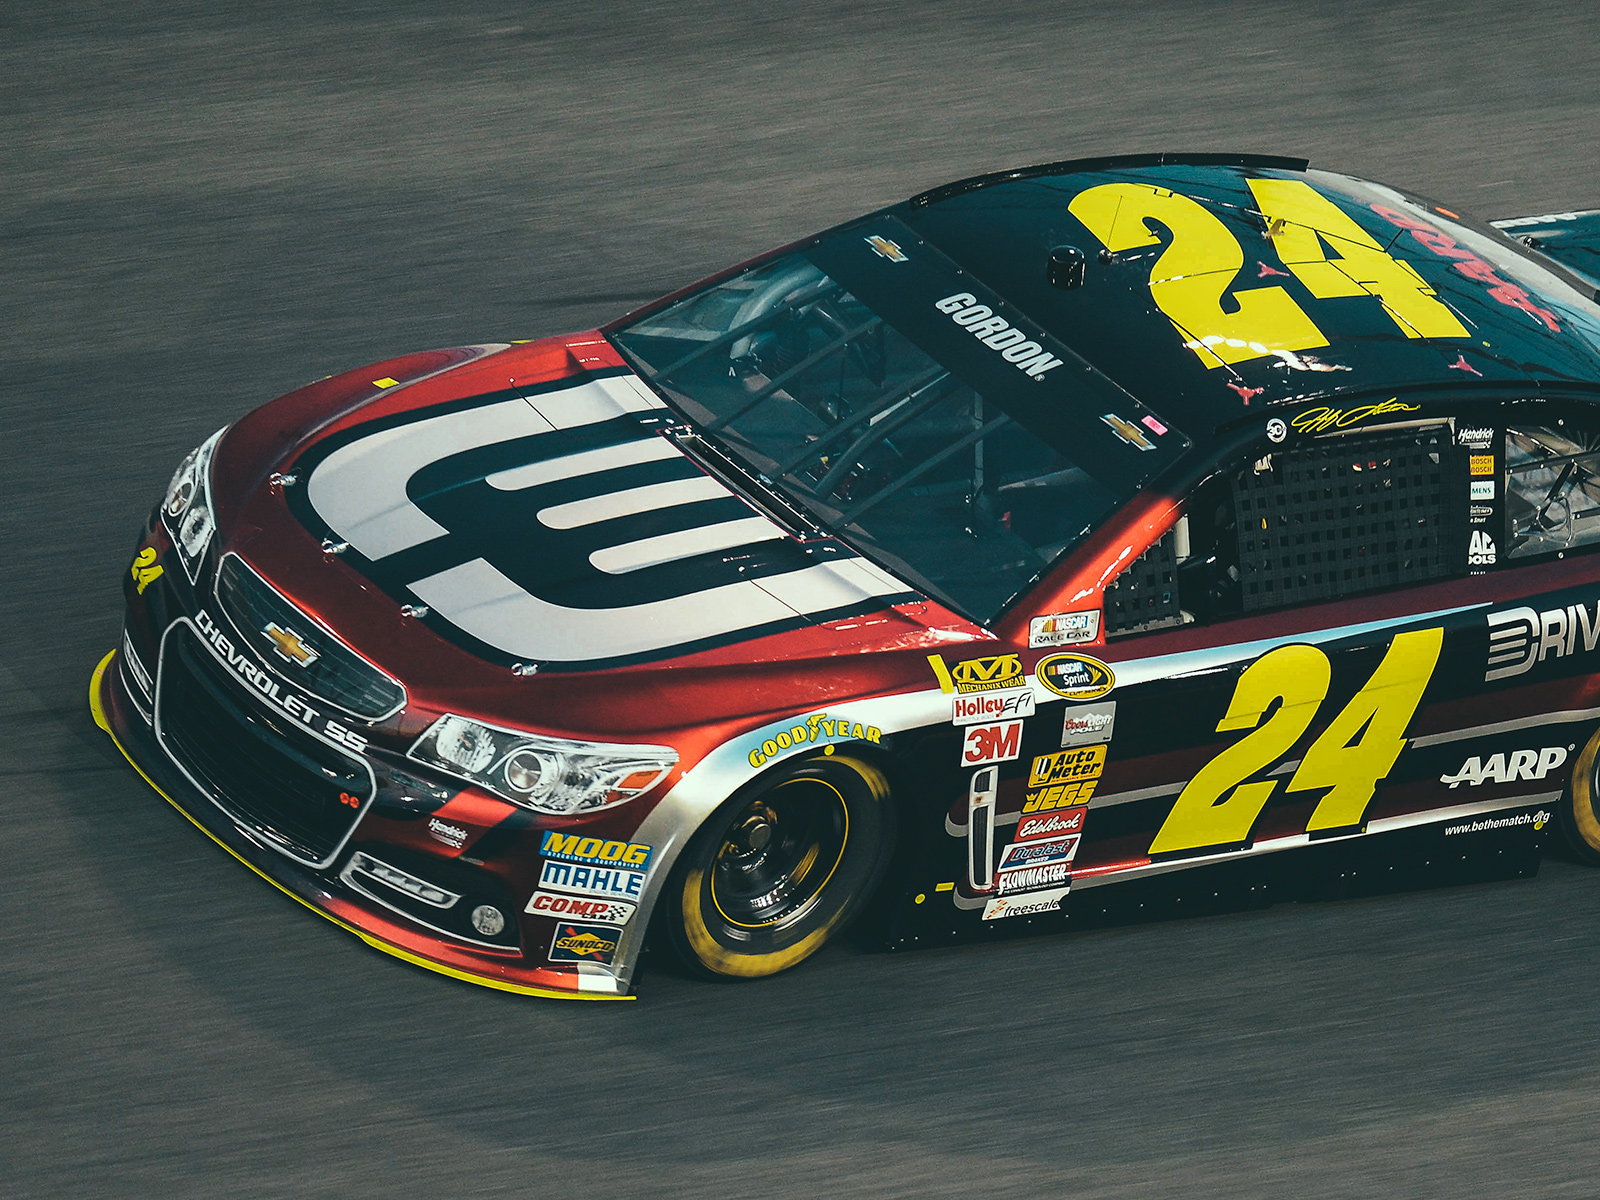 Jeff Gordon 2014 Wallpaper Gordonjpg 1600x1200